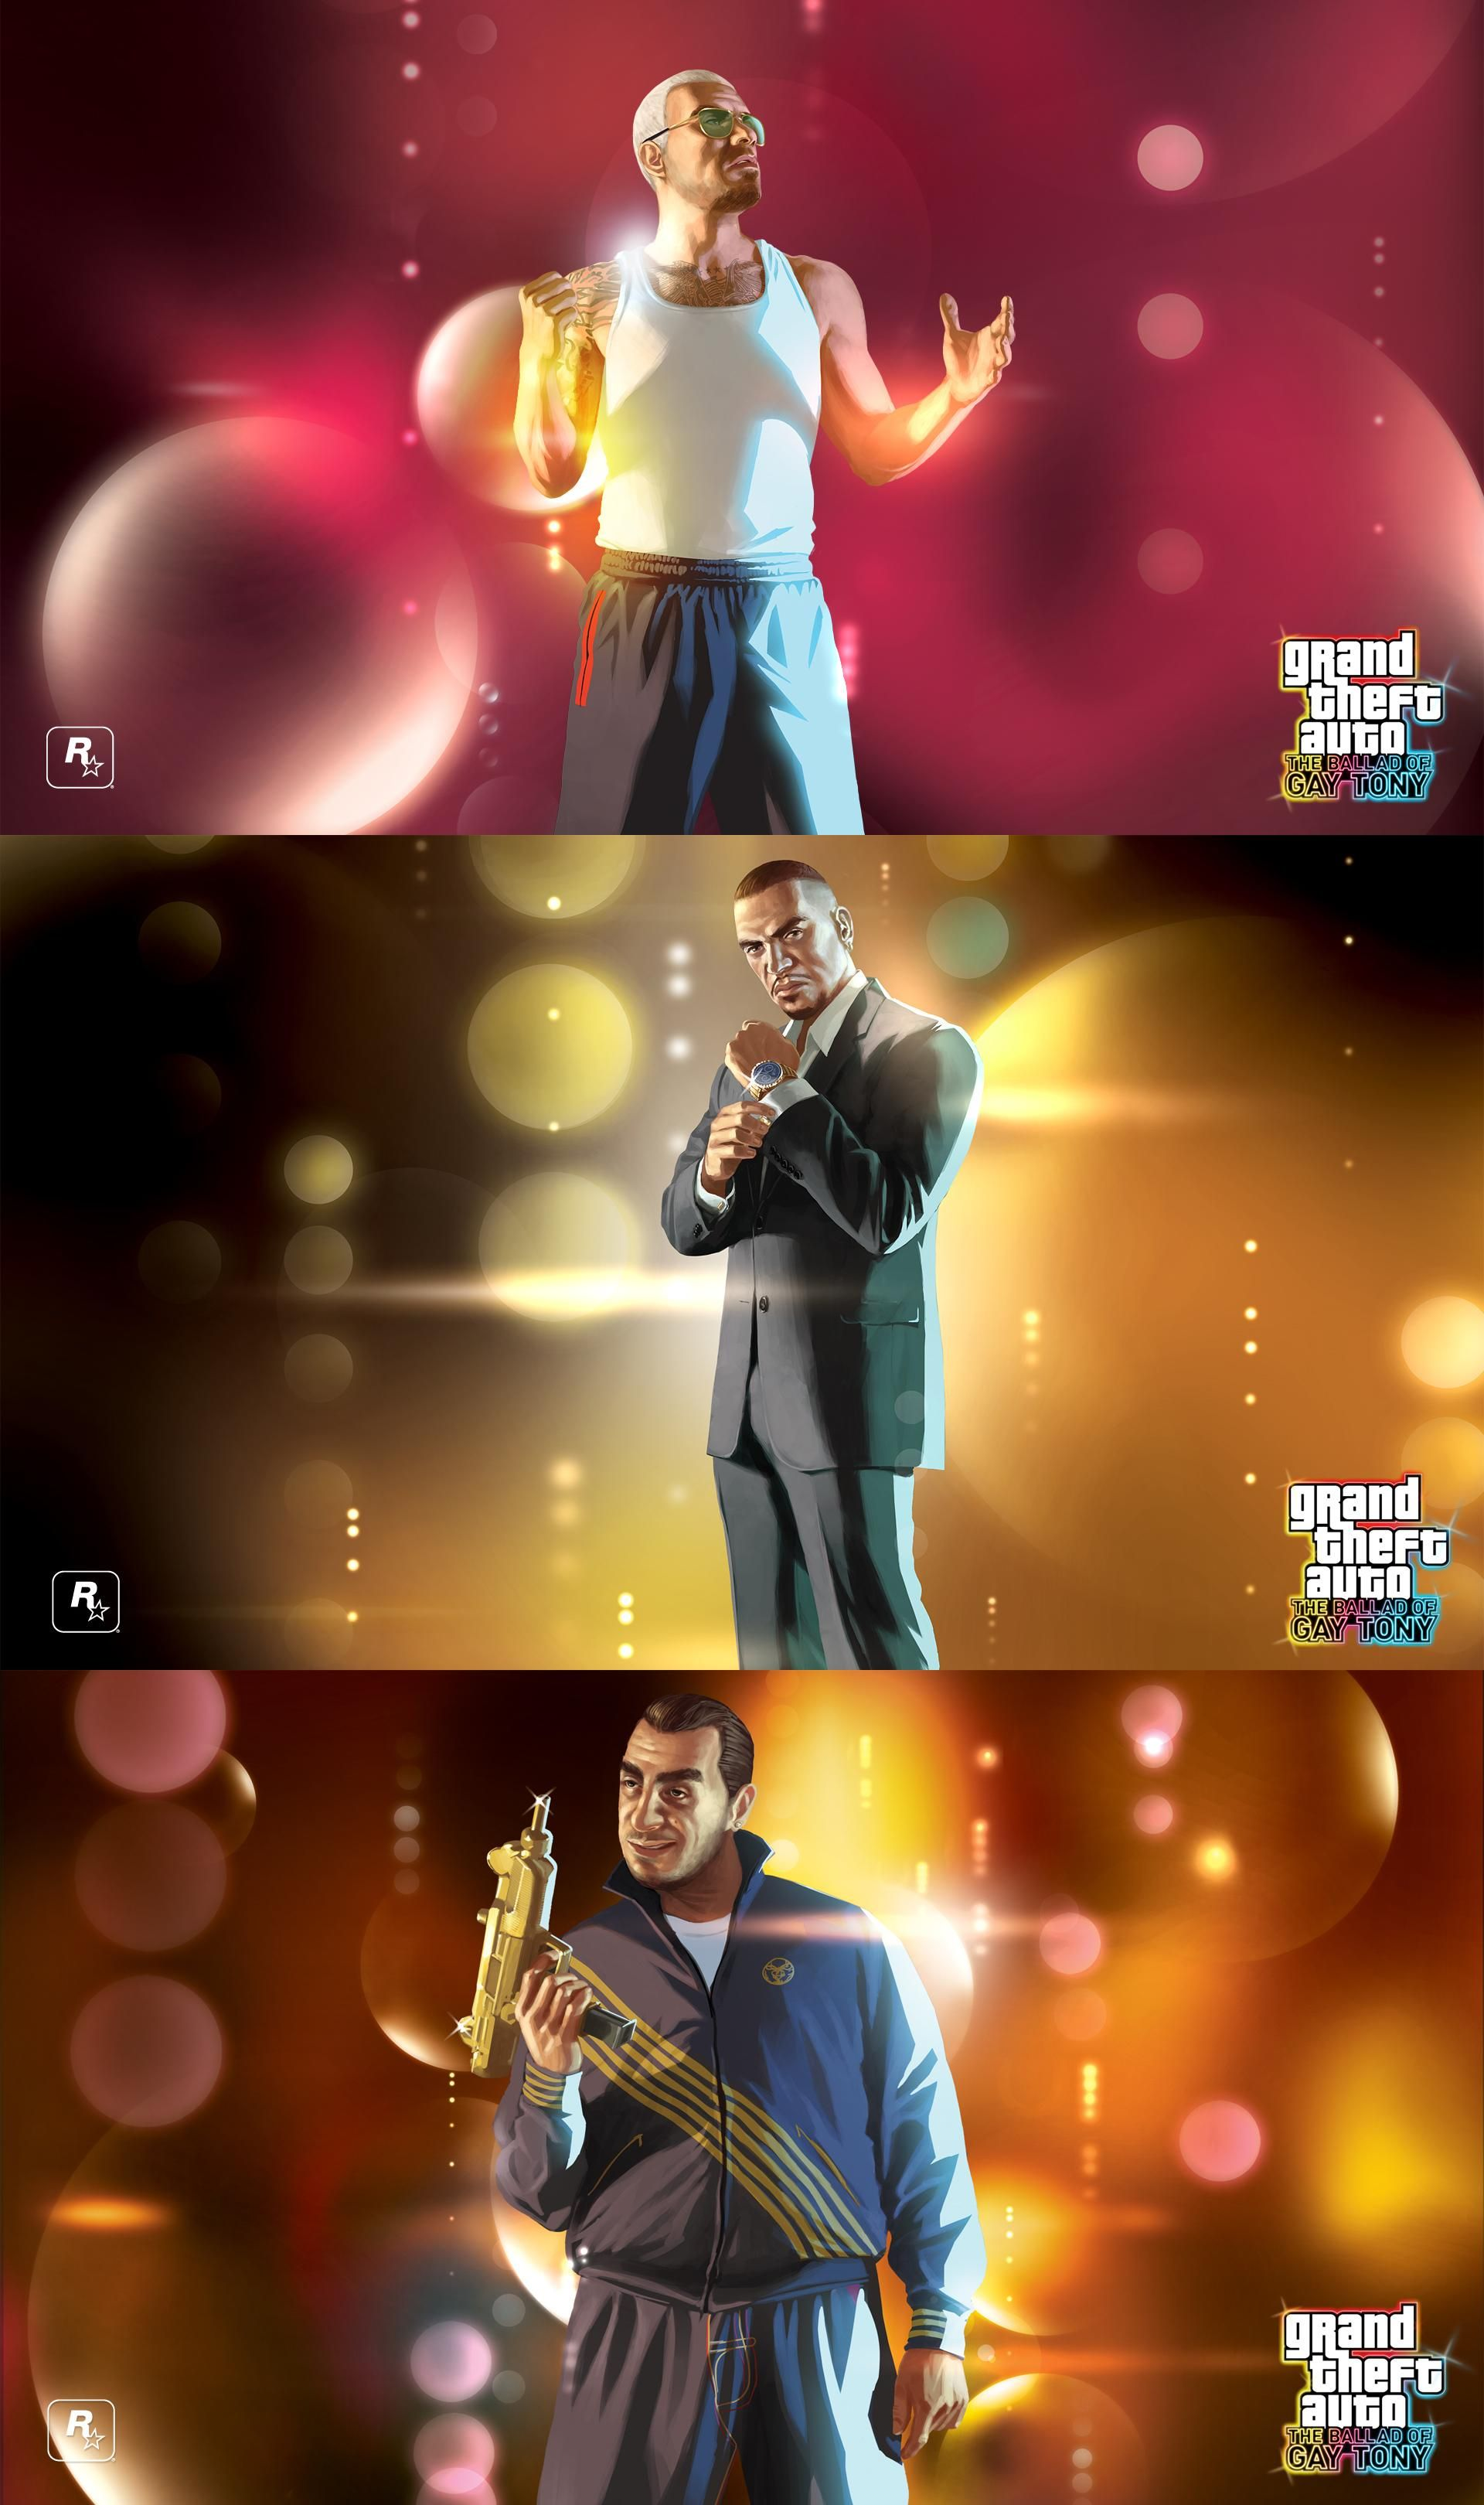 gta 5 theme song full mp3 download